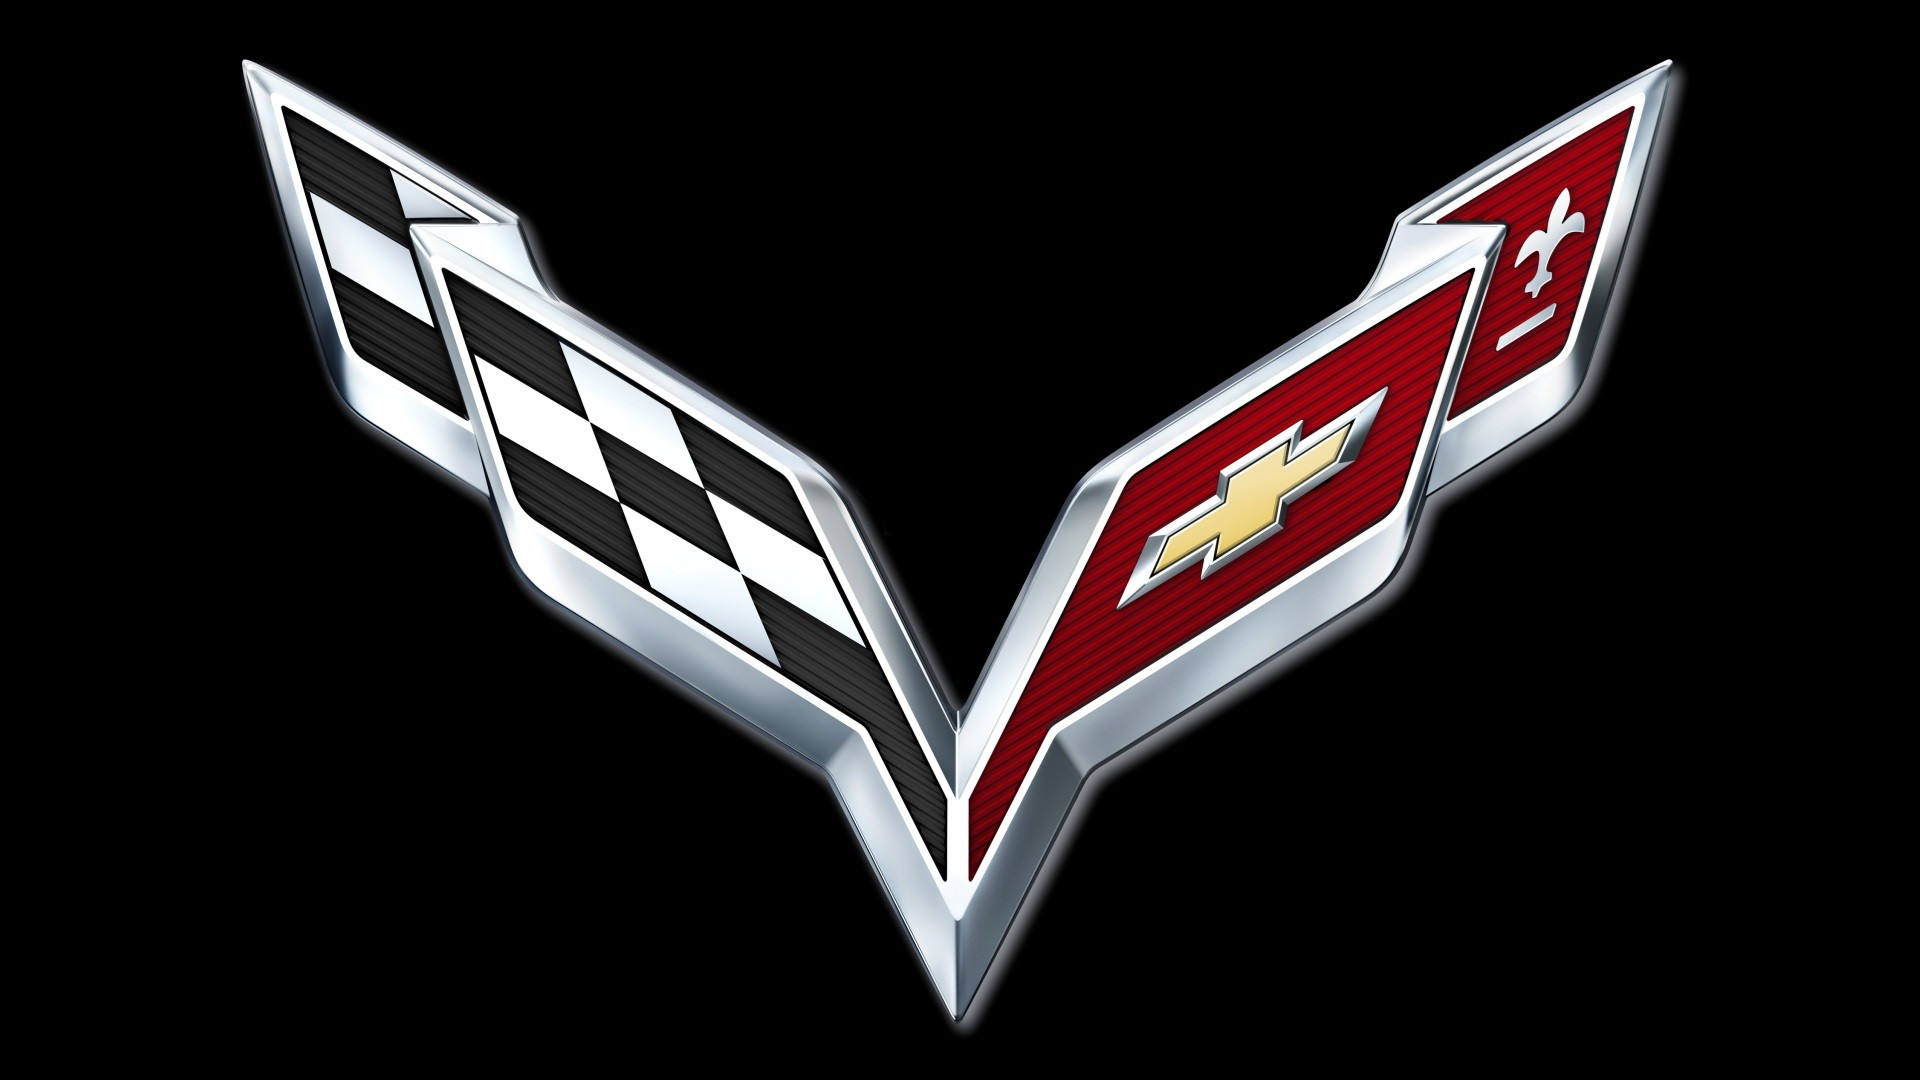 Corvette Logo Wallpapers 1080p with High Definition Wallpaper px  213.88 KB Logo Stingray 2014 C6